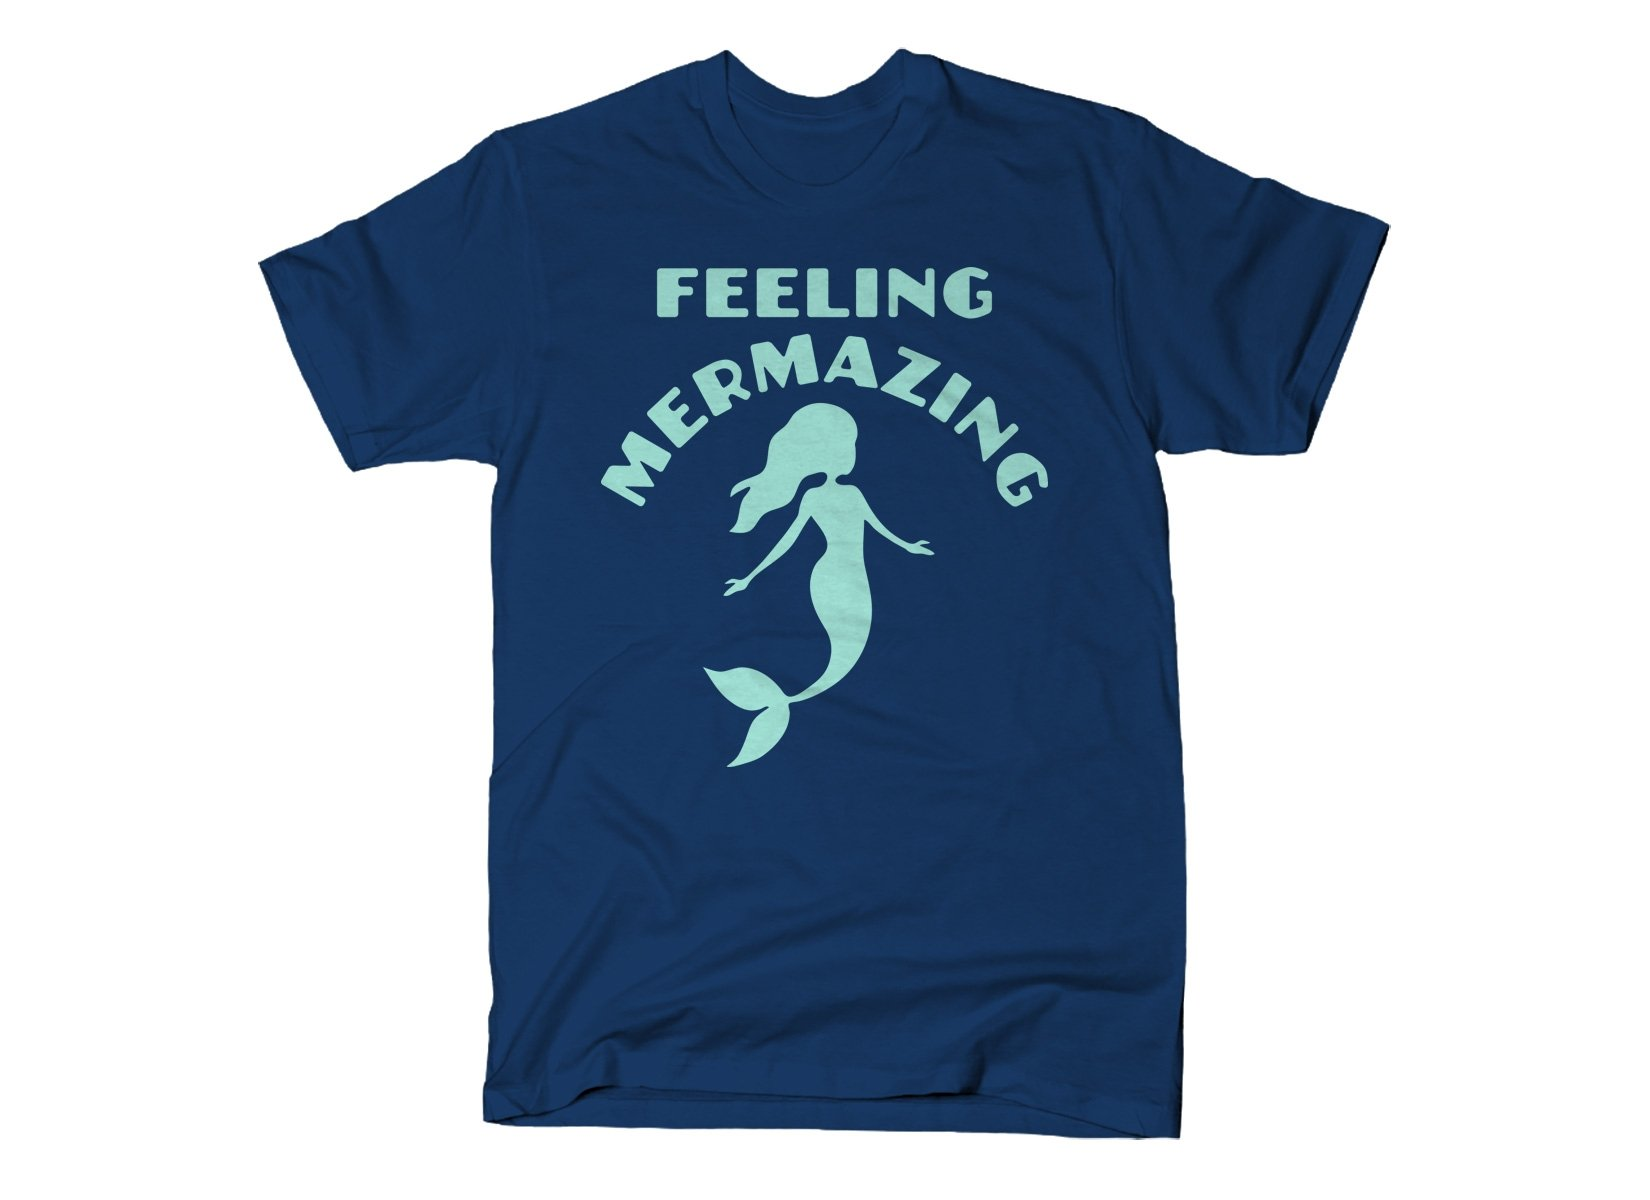 Feeling Mermazing on Mens T-Shirt